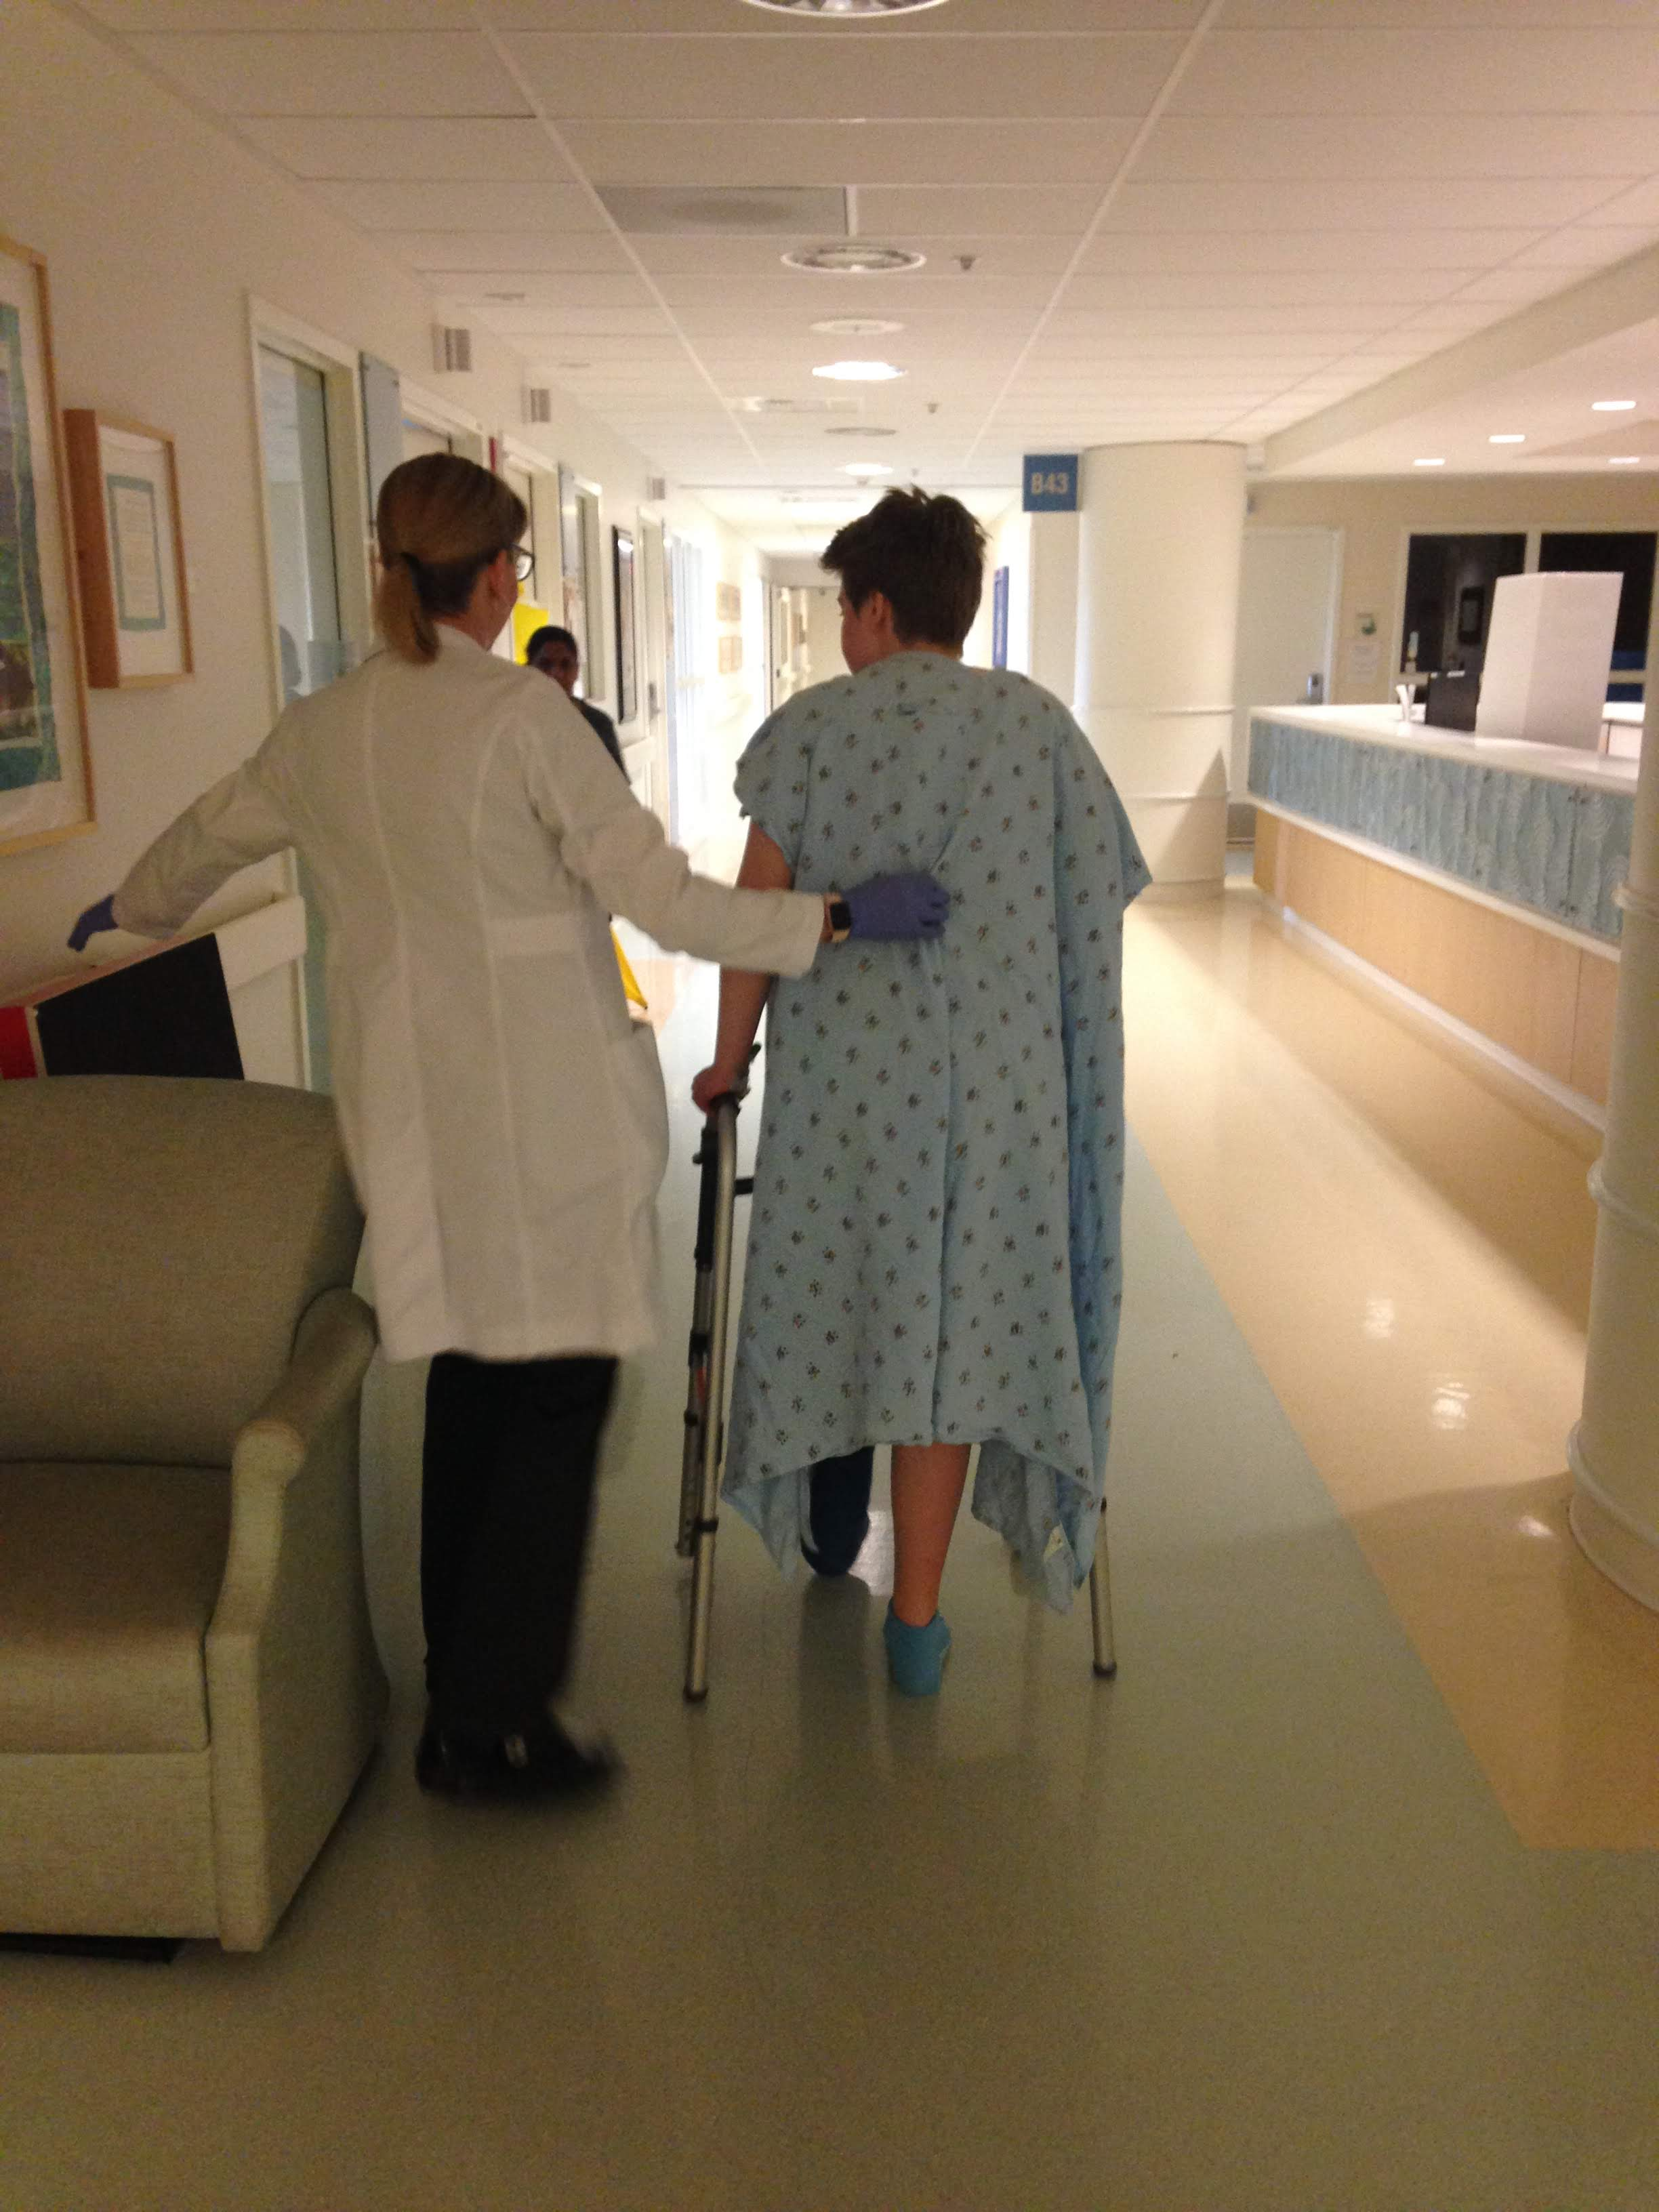 A picture from behind of a white-appearing healthcare provider with white lab coat with her hand slightly on the back of a young white teenager's back. He wears a blue hospital gown and takes a walk using a walker down a hospital hallway